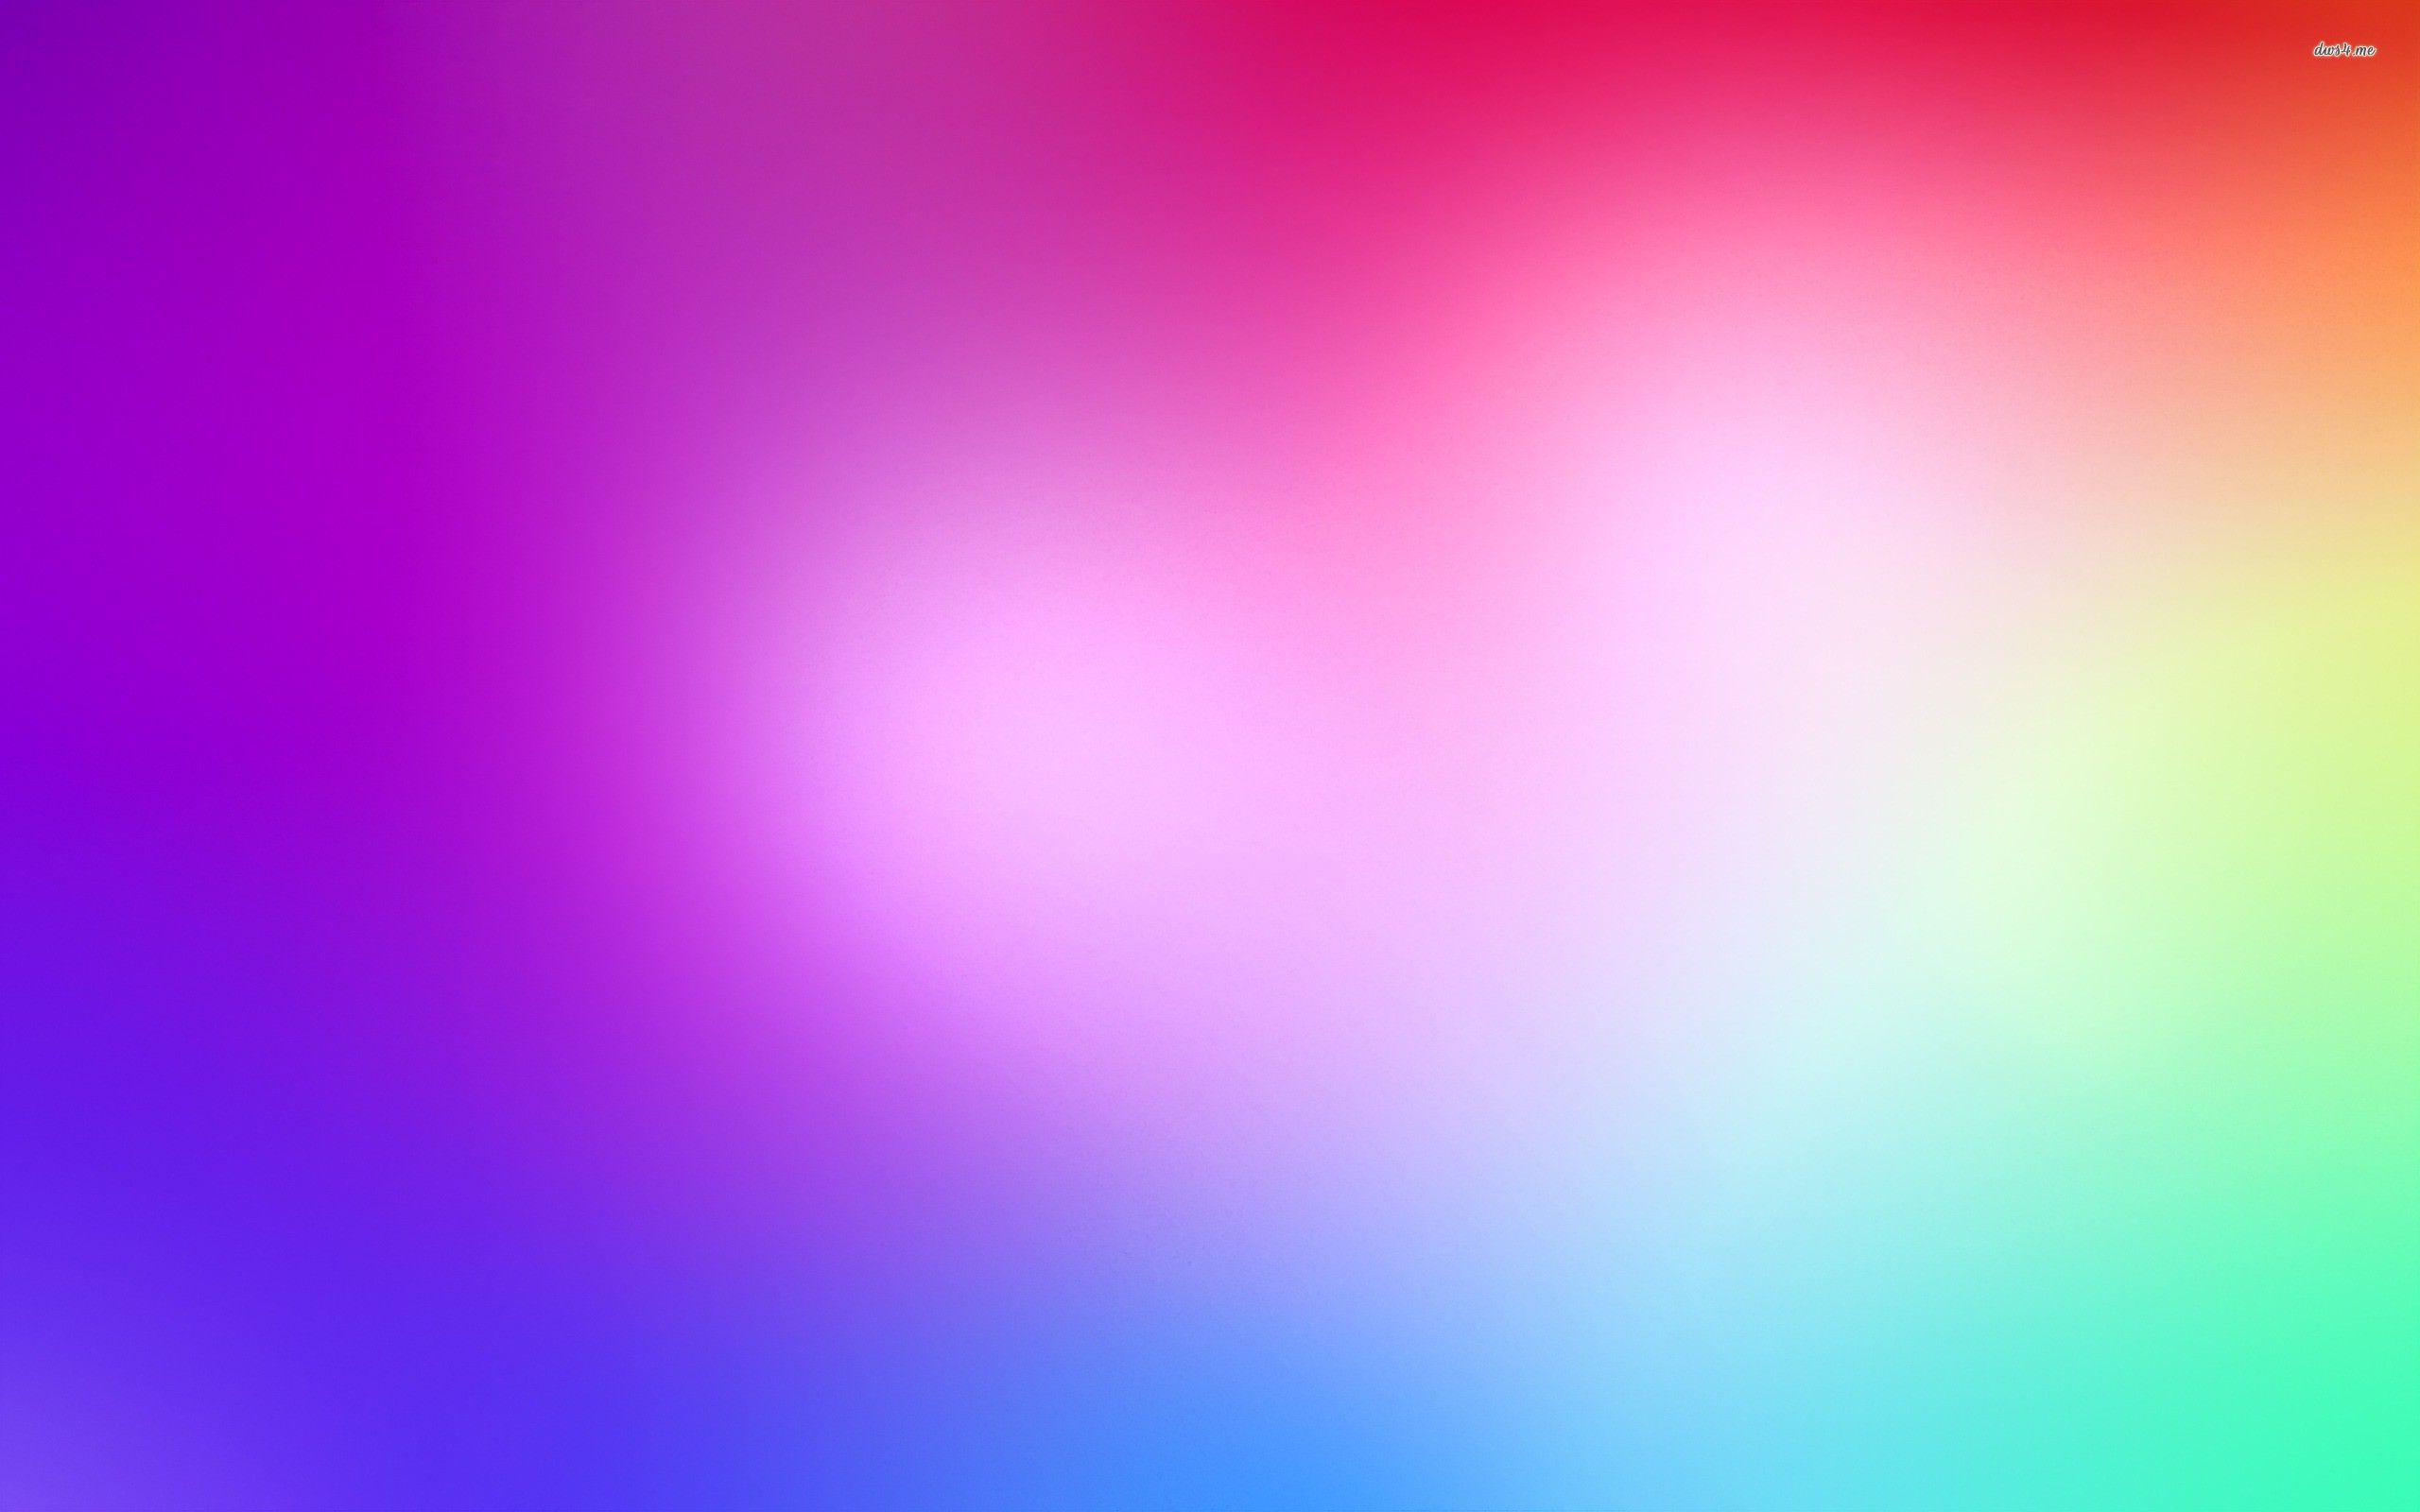 Gradient Background HD wallpaper